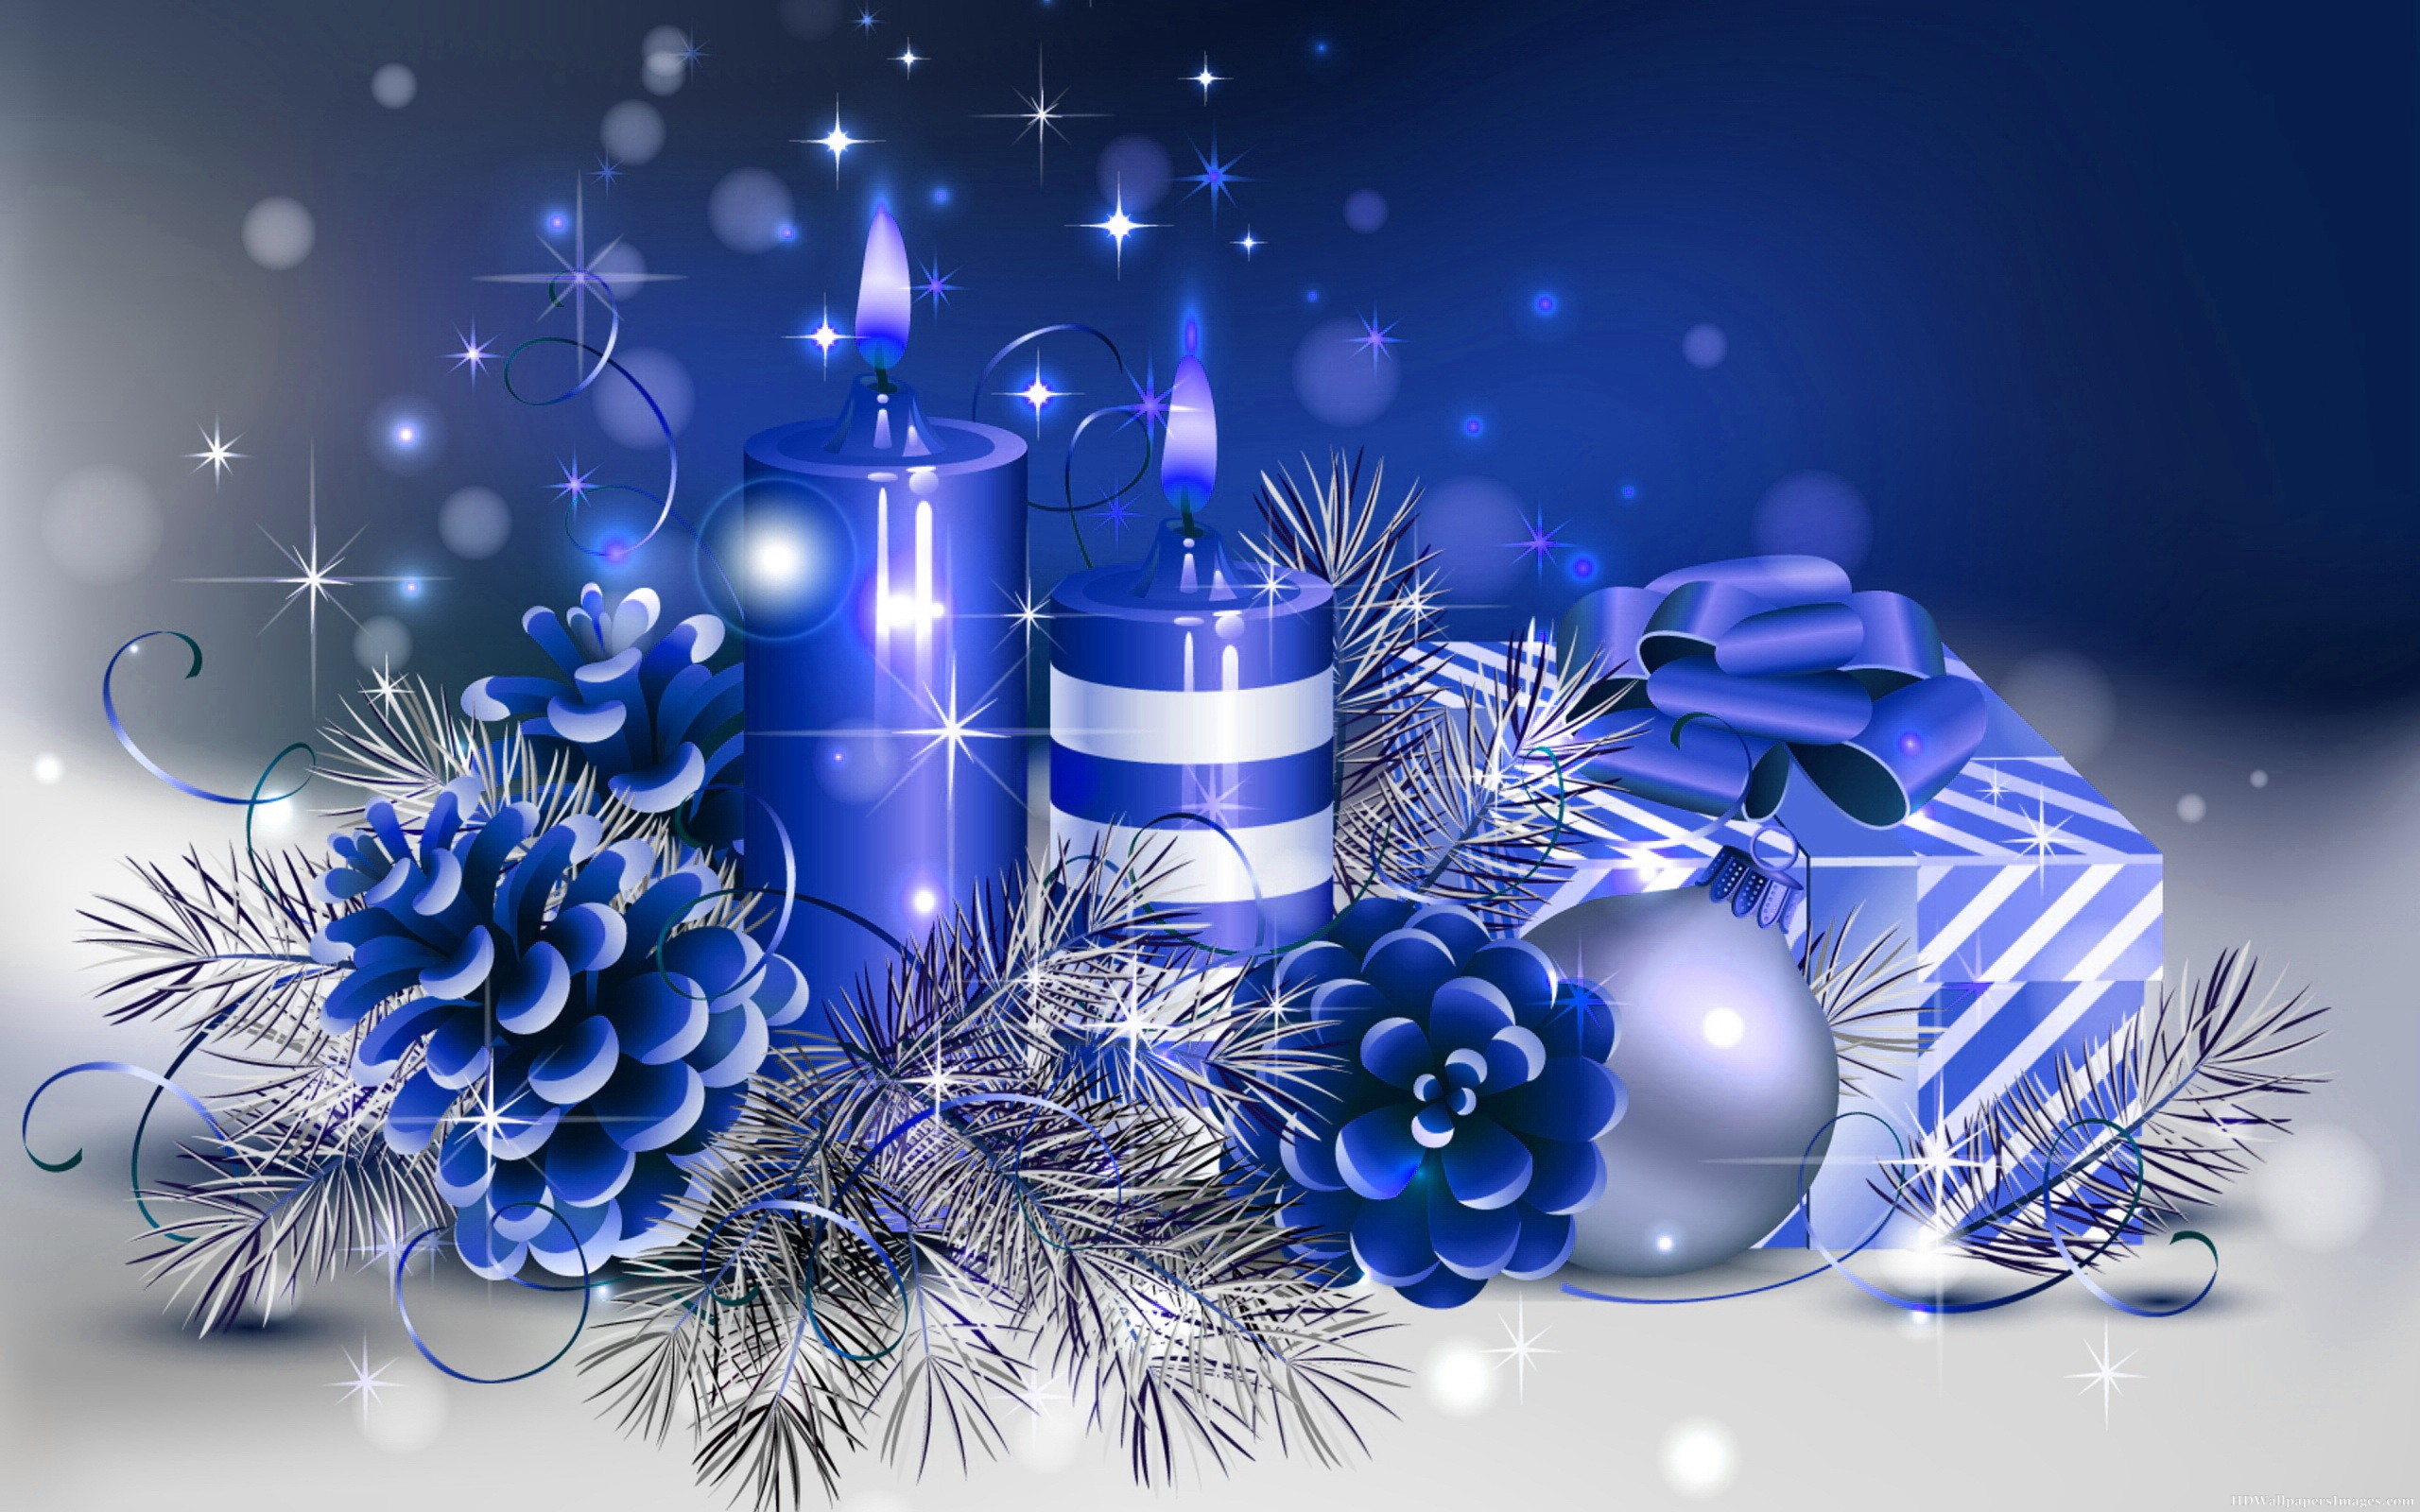 71 Entries In Hetalia Backgrounds Group - Blue Candle For Christmas , HD Wallpaper & Backgrounds